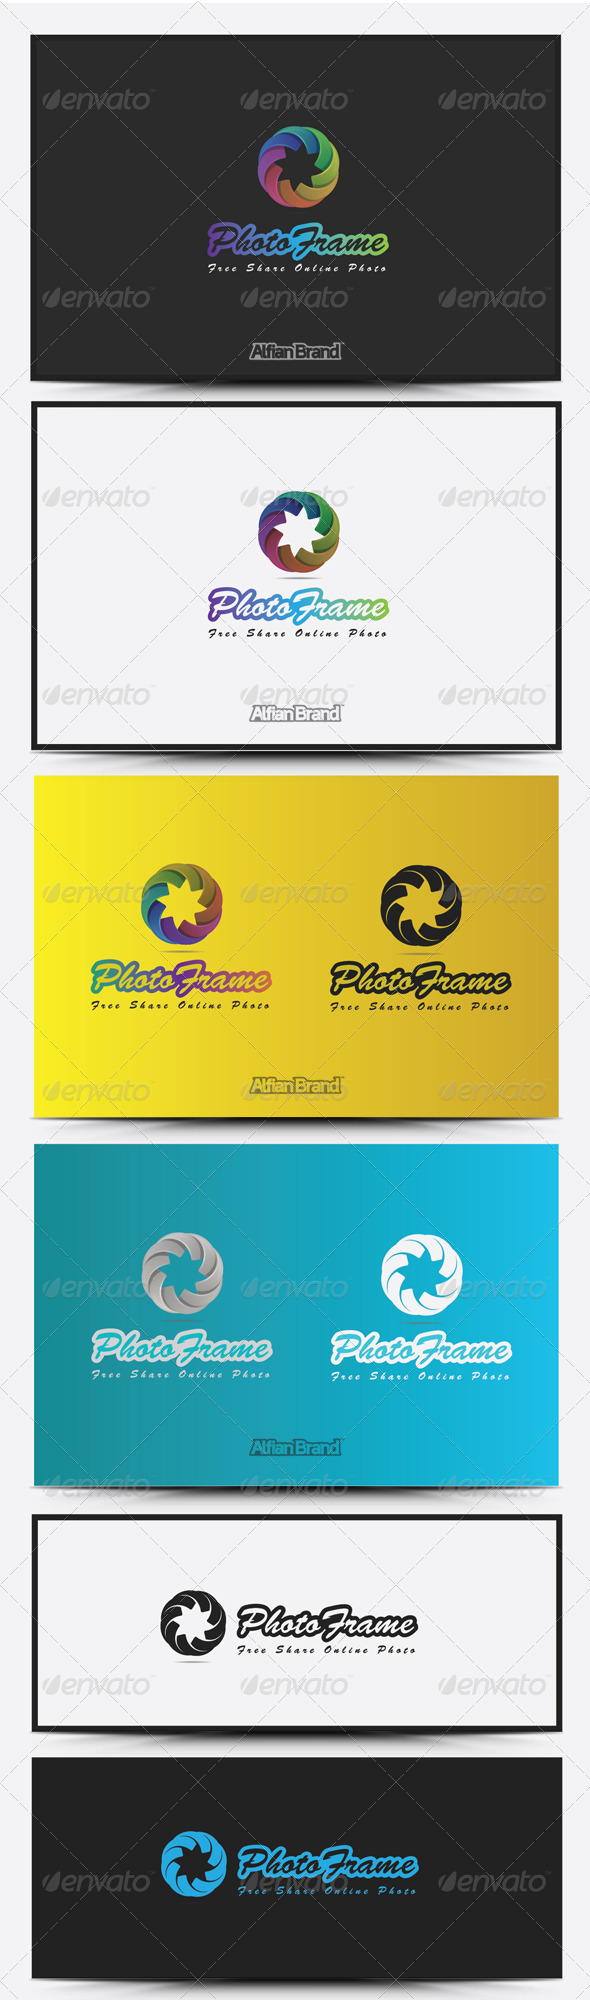 GraphicRiver Photo Frame Logo 8516679